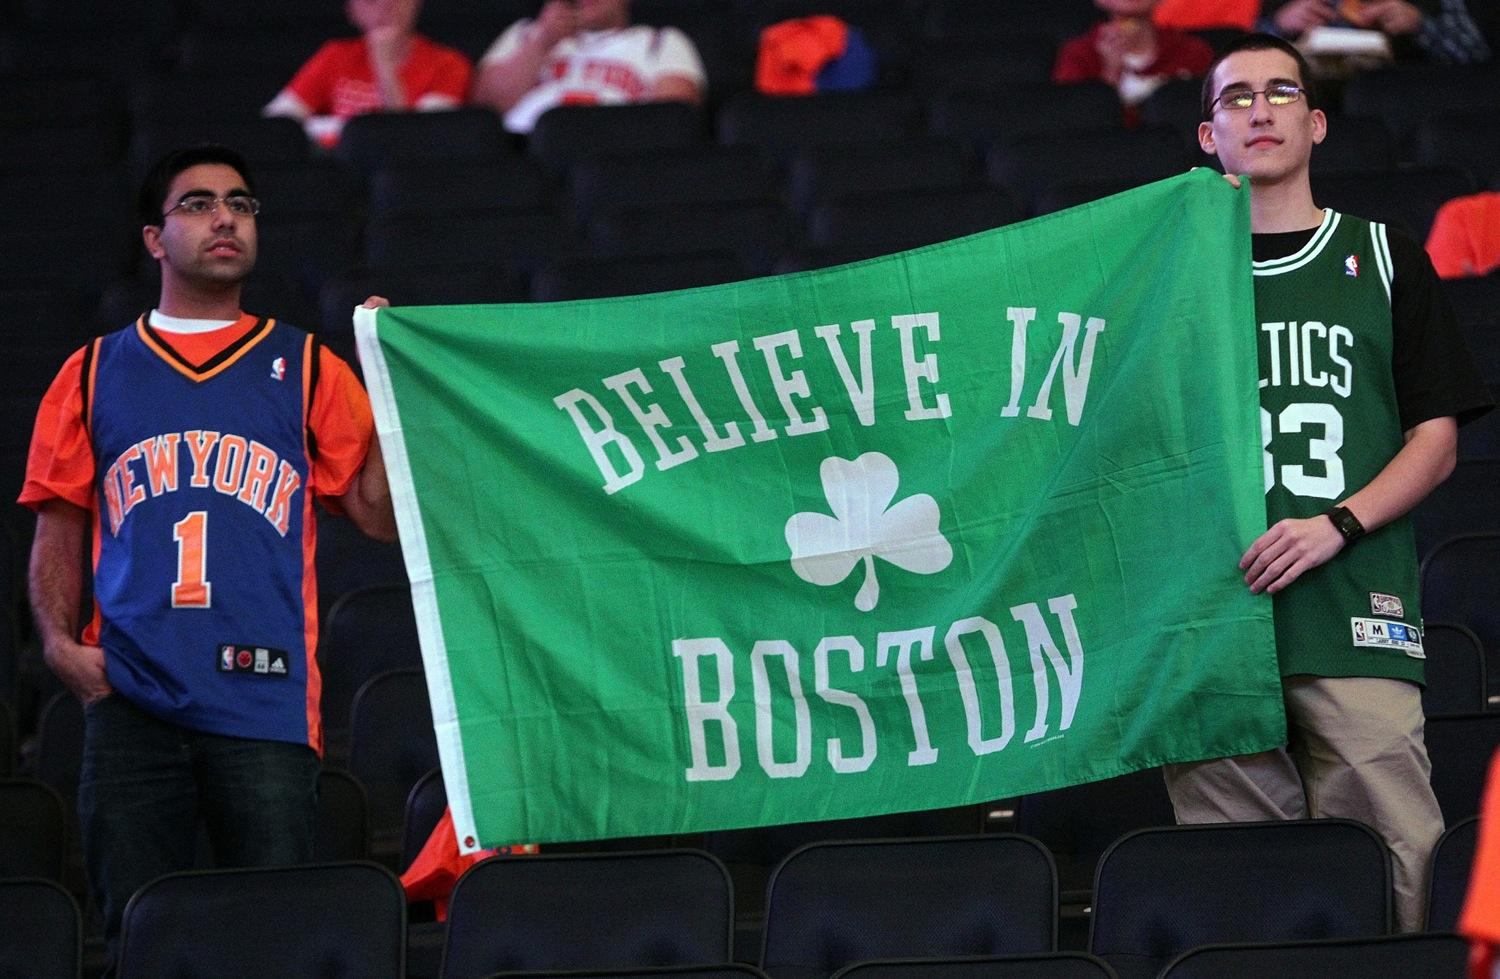 A New York Knicks and Boston Celtics fan hold up a sign on Saturday, April 20, 2013, to pay tribute to the victims of the Boston Marathon. The Boston Celtics faced the New York Knicks in the NBA's Eastern Conference playoffs in New York, New York. (Matt Stone/Boston Herald/MCT)